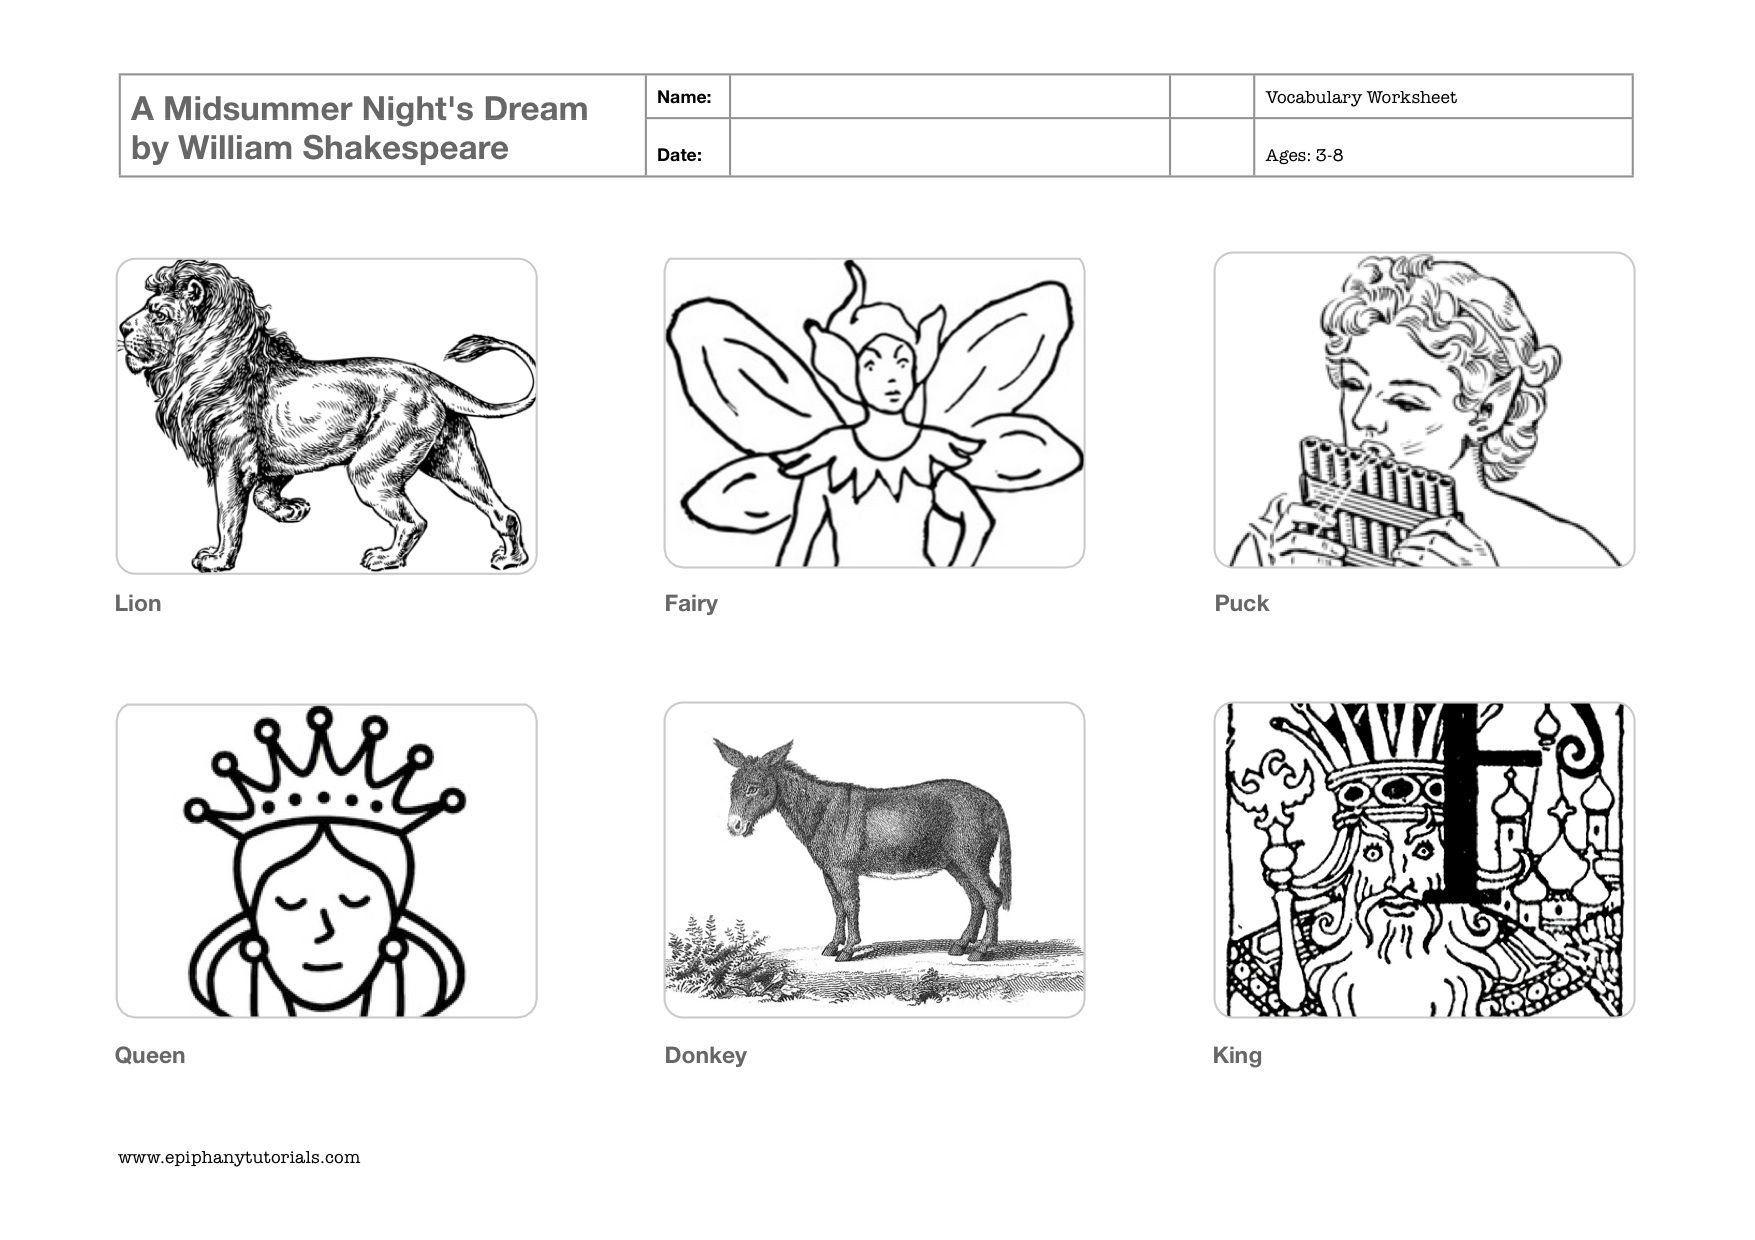 Teaching Shakespeare to young children: Free downloadable